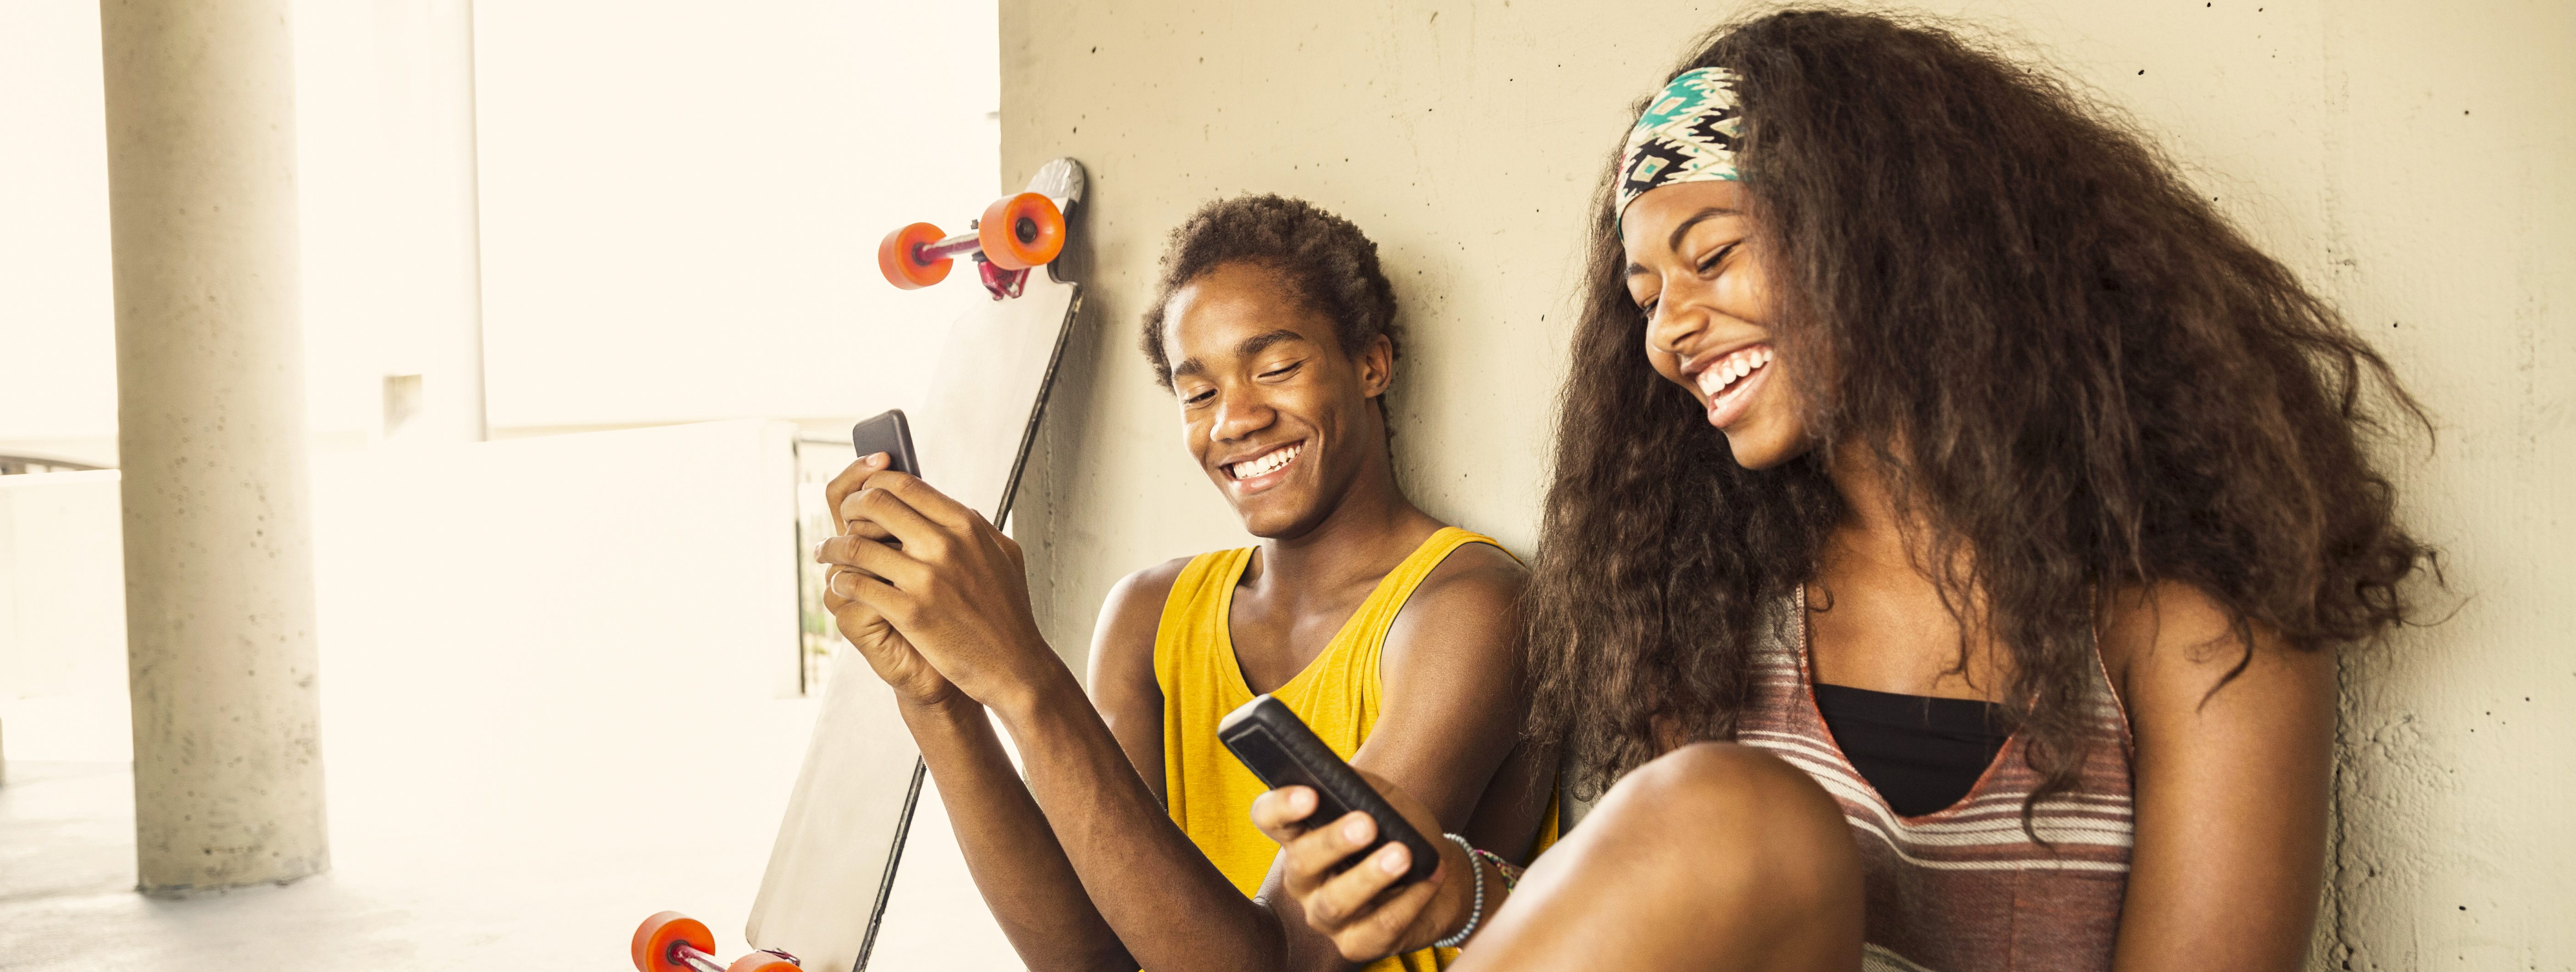 MTN Group works to bridge the digital divide, connects 100 million to the internet